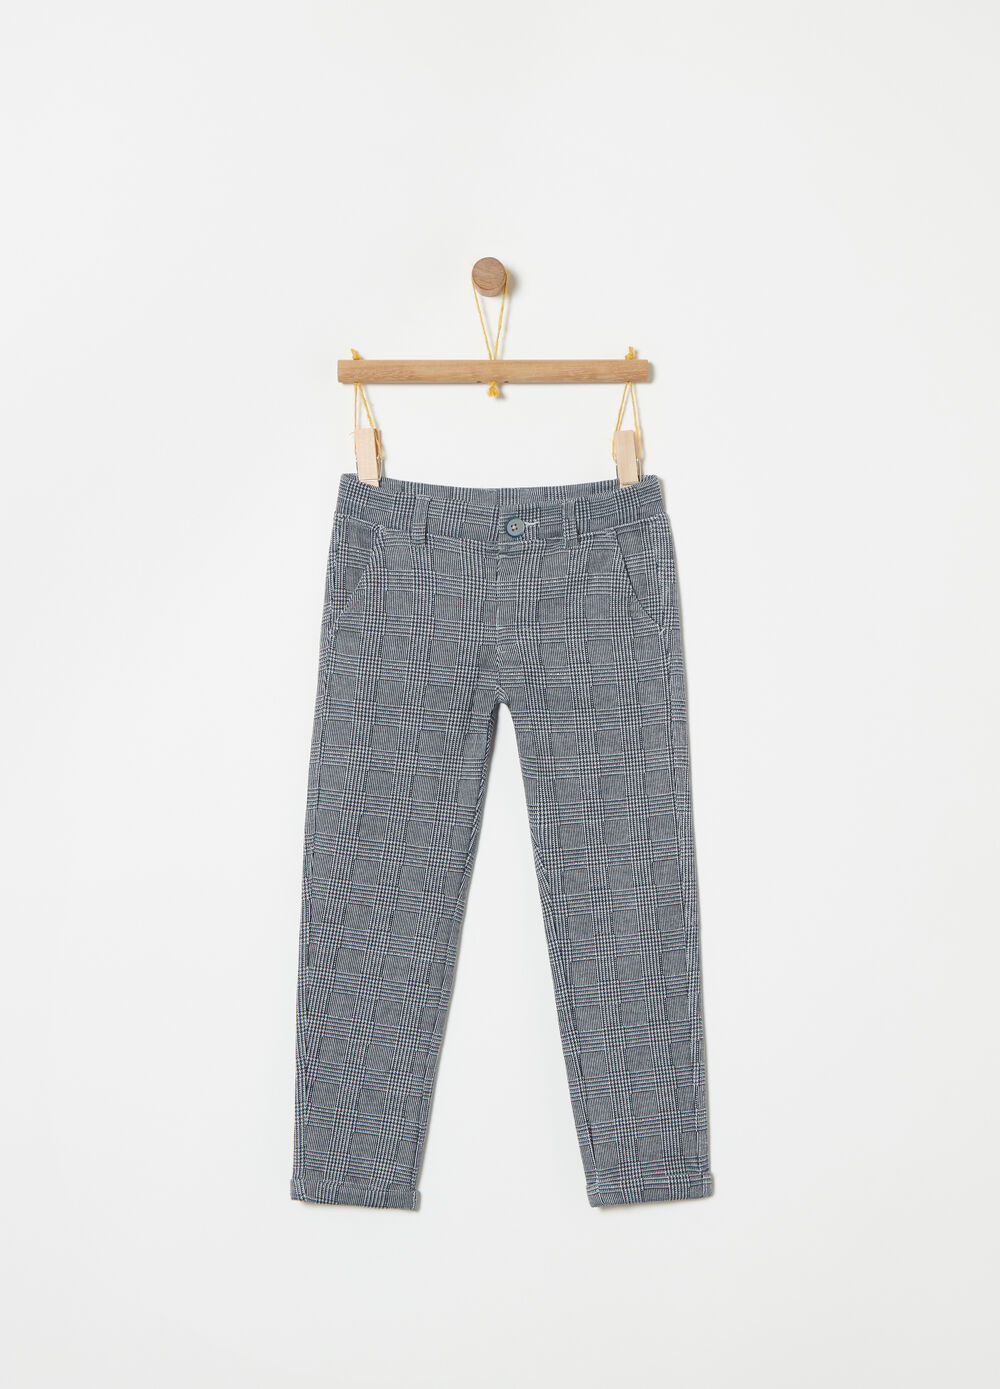 Warm yarn-dyed trousers with pockets